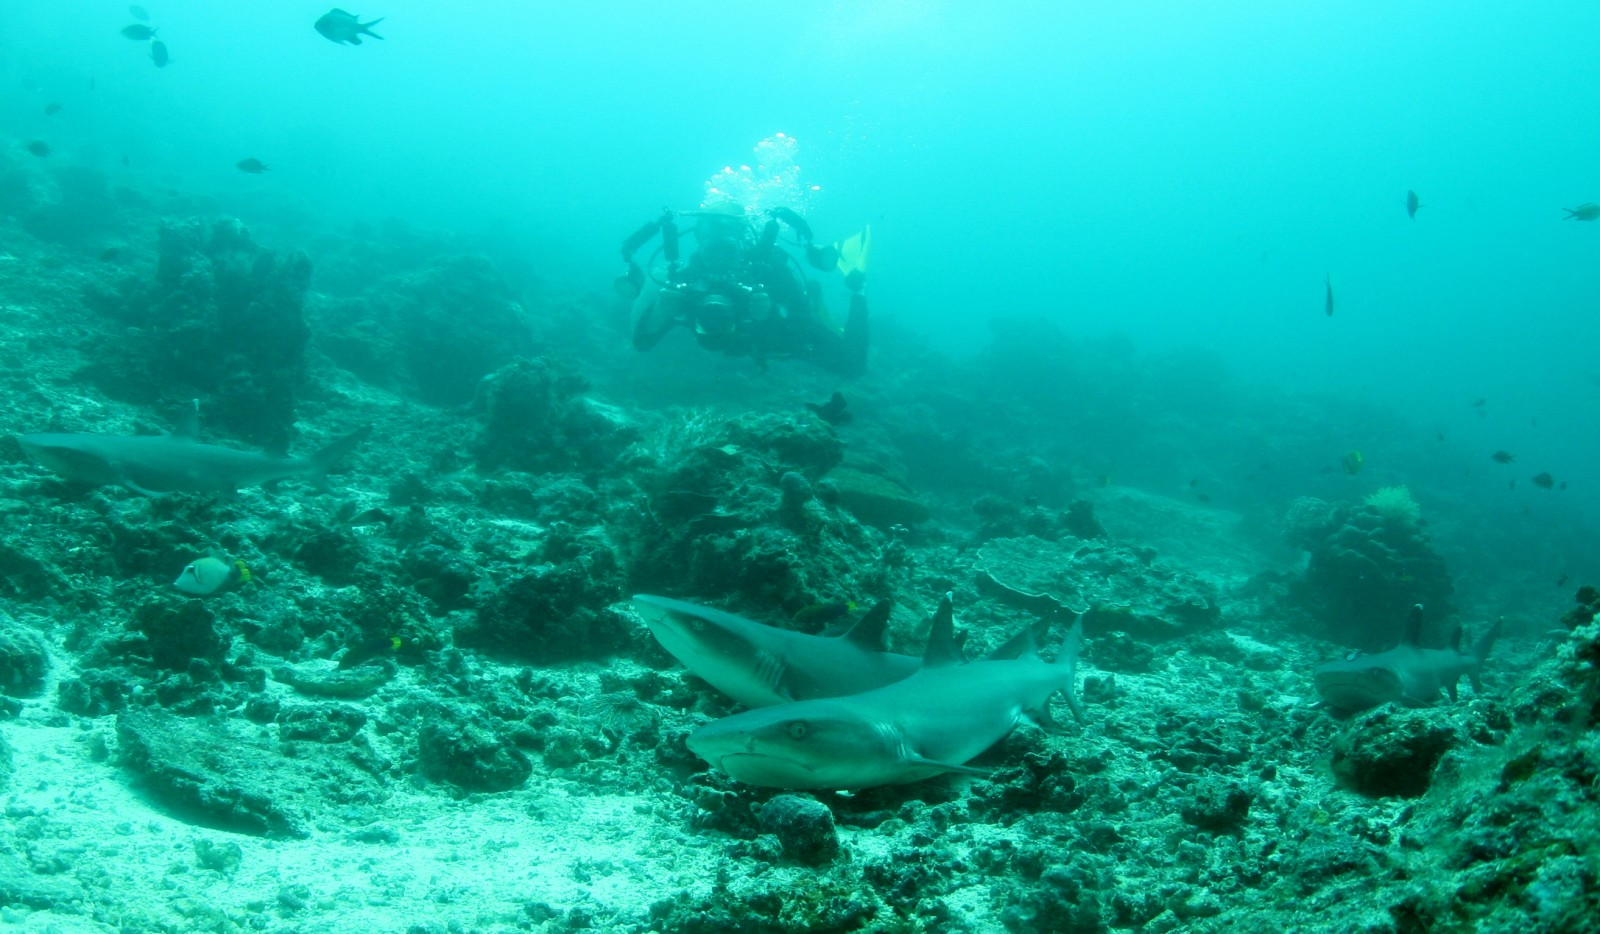 Sabah's sharks are hugely popular with dive tourists